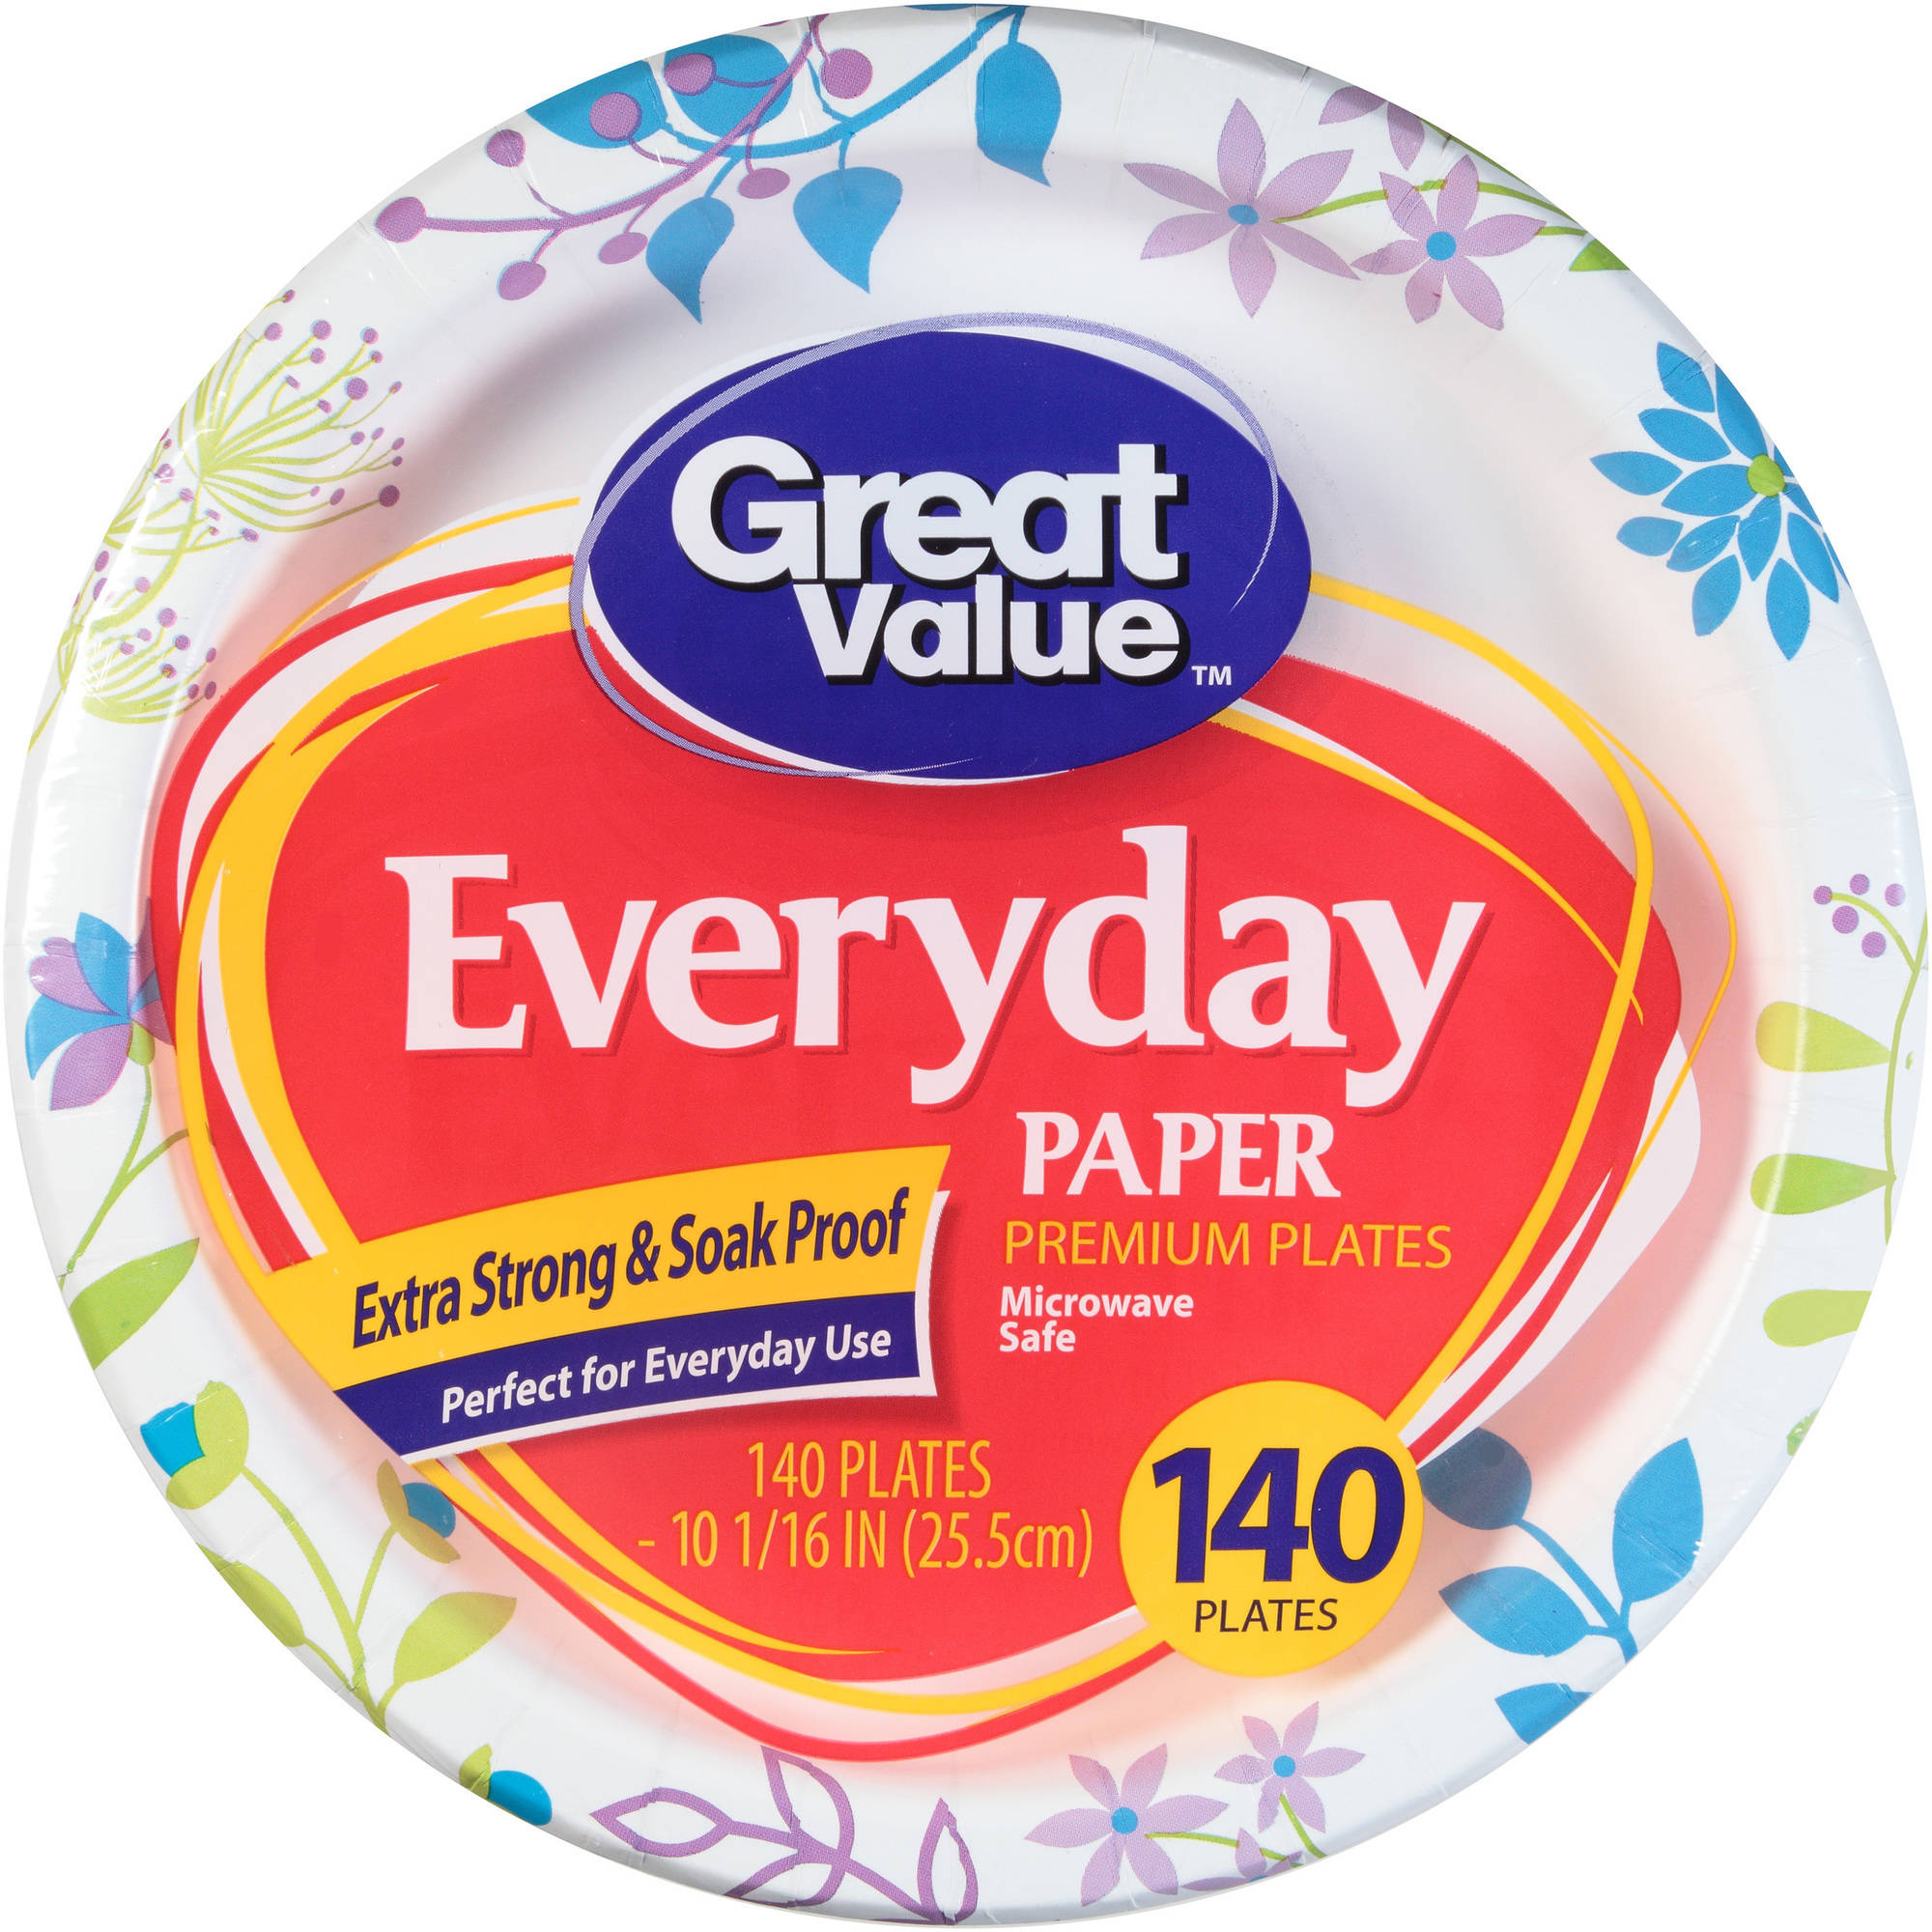 Great Value Everyday Paper Premium Plates, 140 count